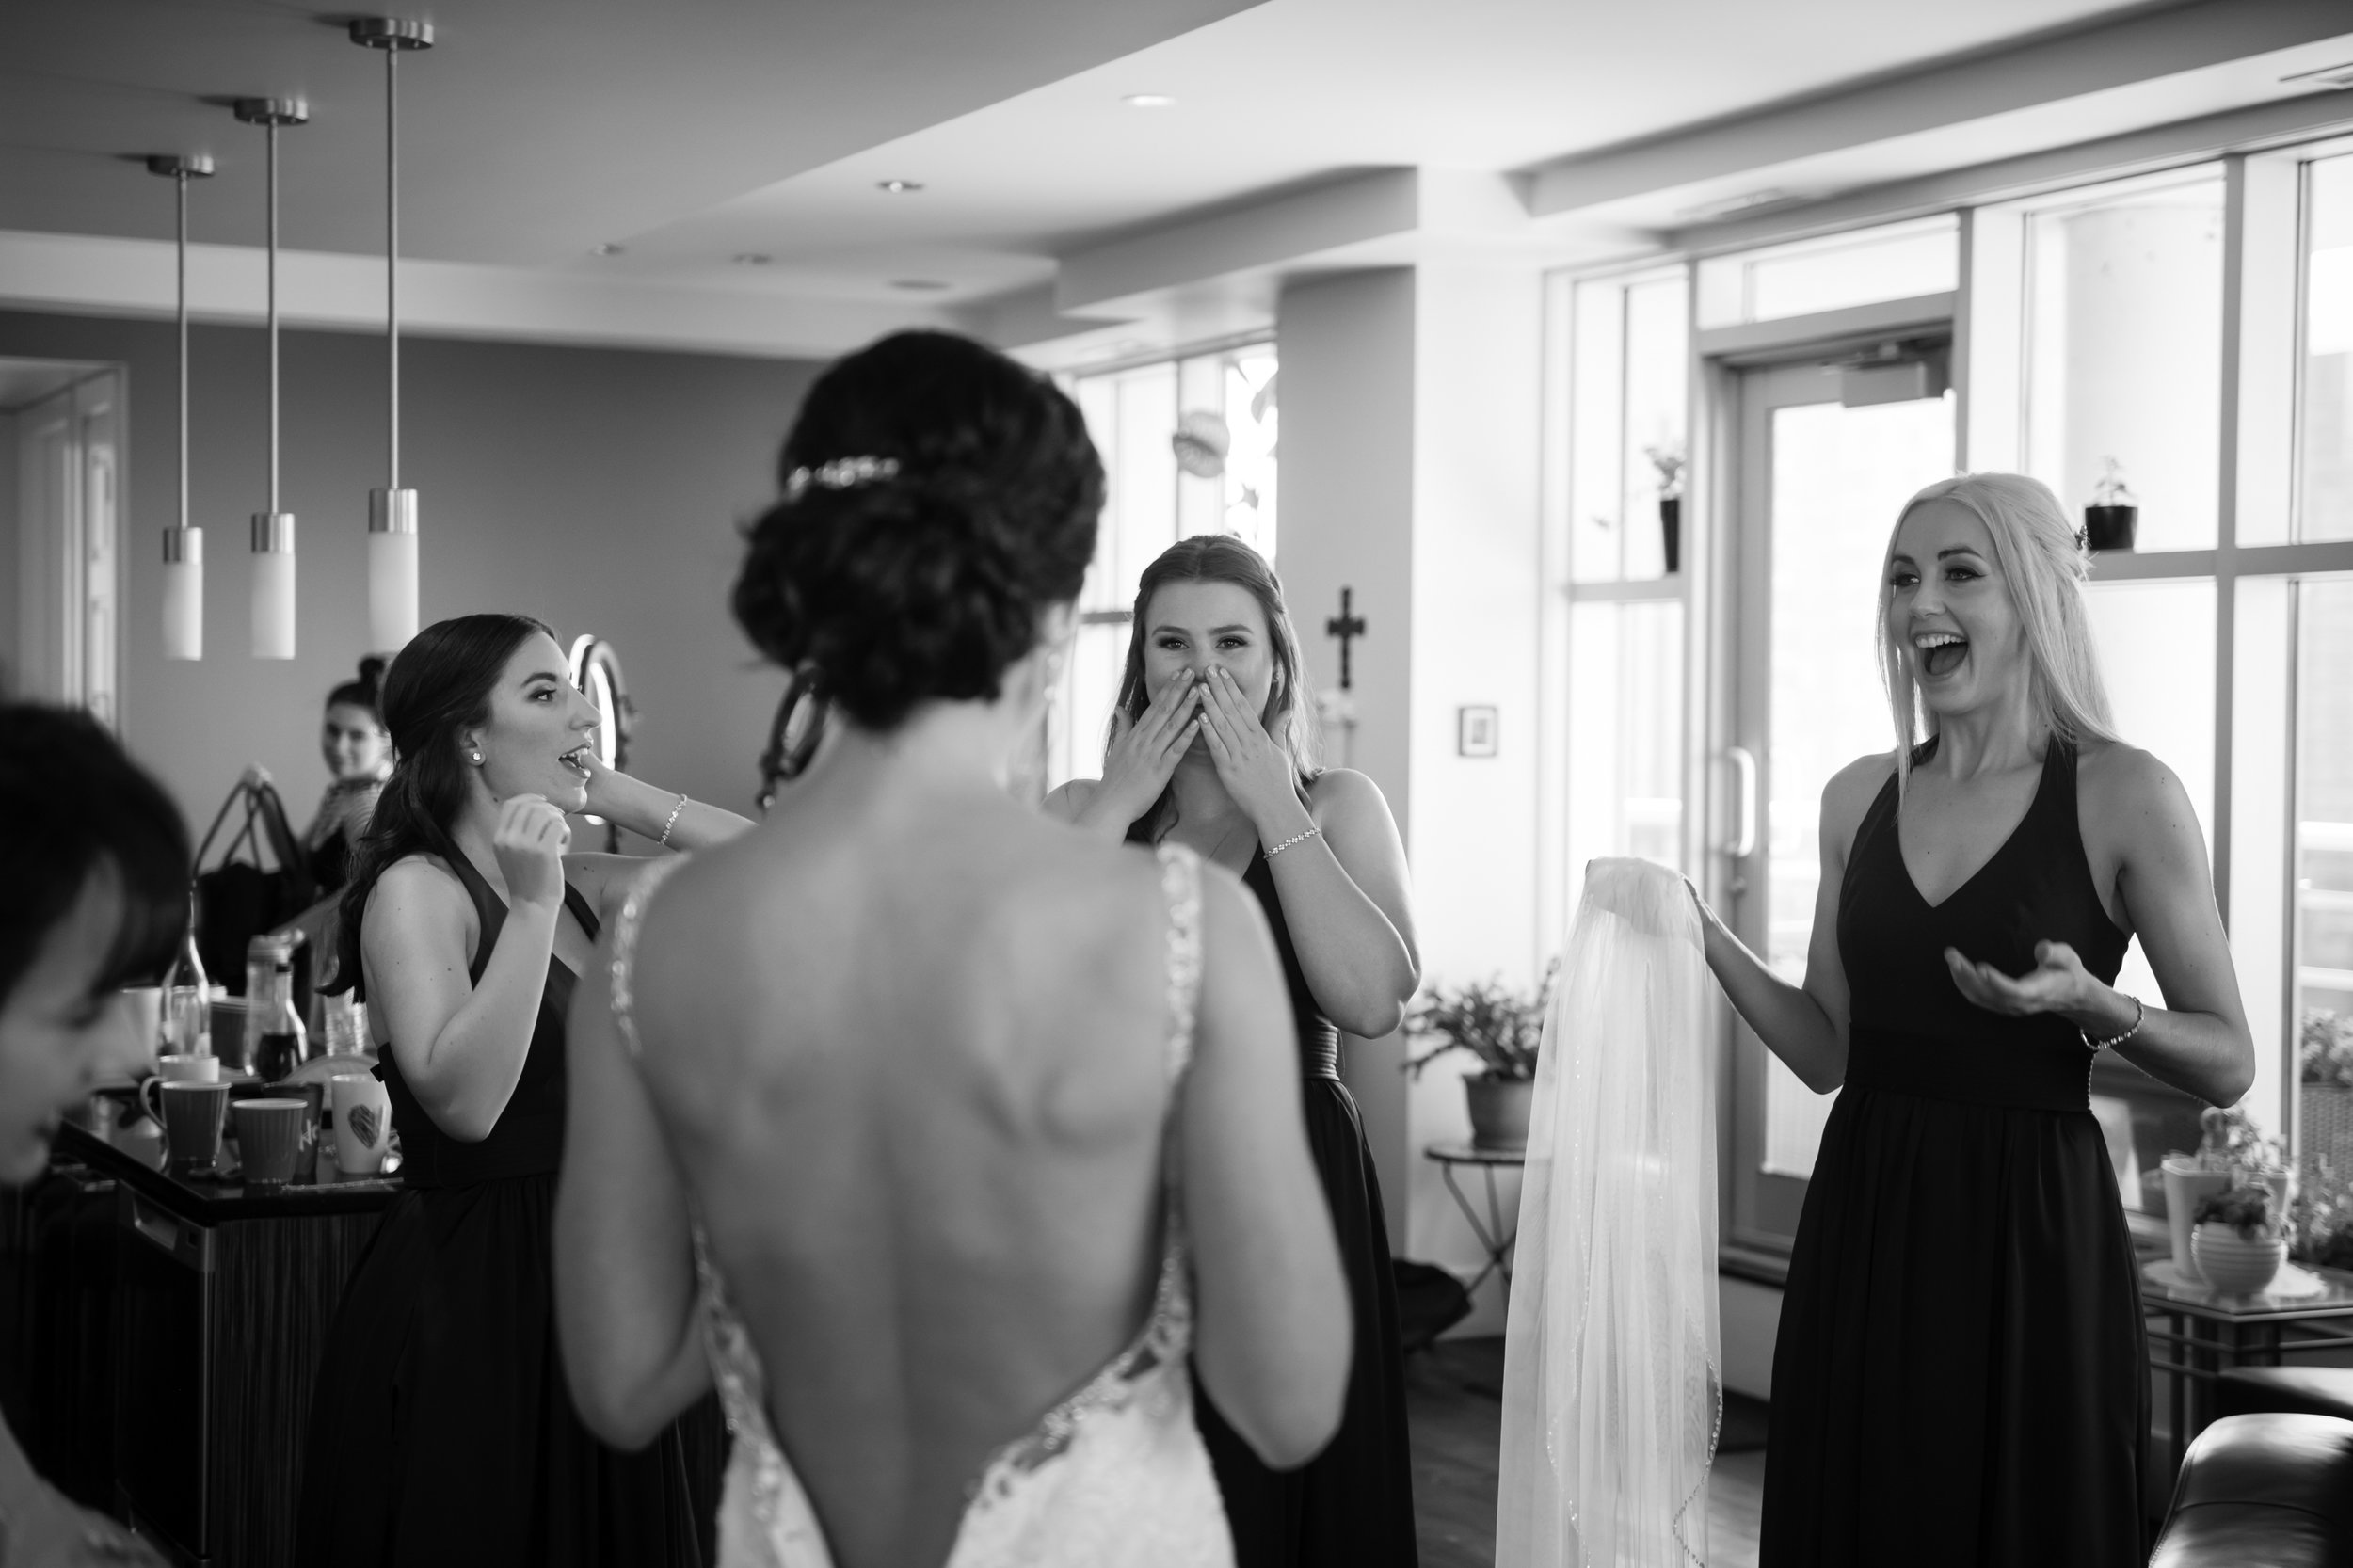 Laura_Danny_Wedding_Sneak_Peek_019.jpg